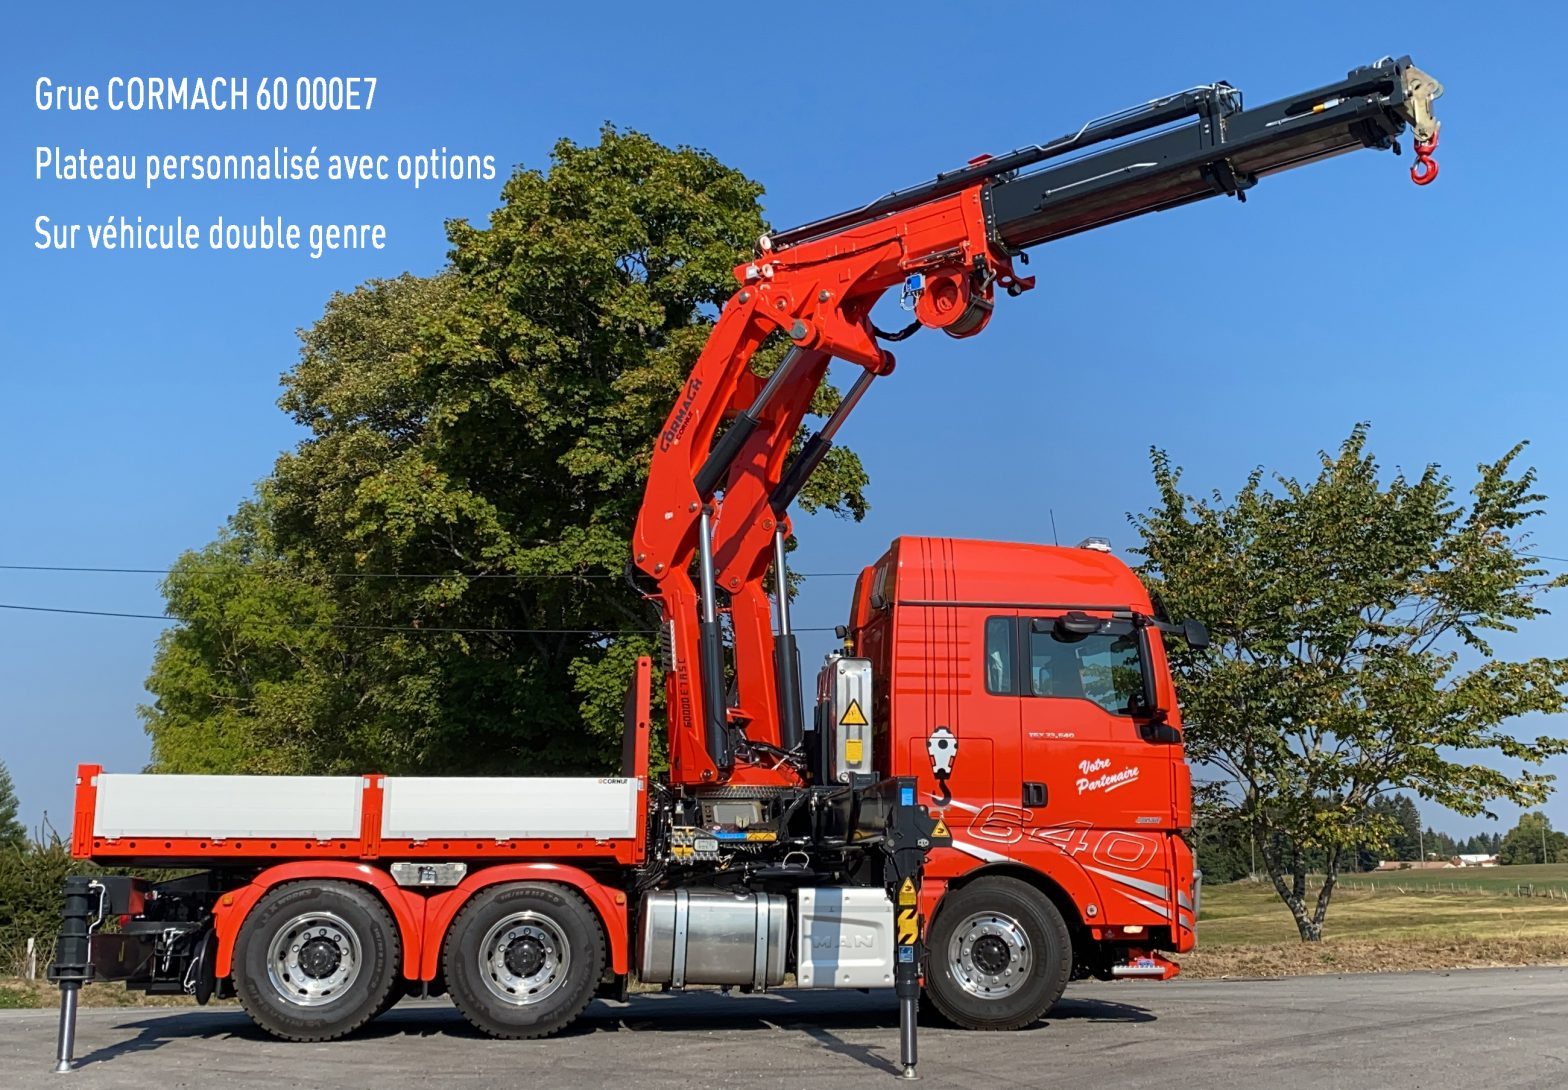 CORNUT-Grue de manutention CORMACH 60 000